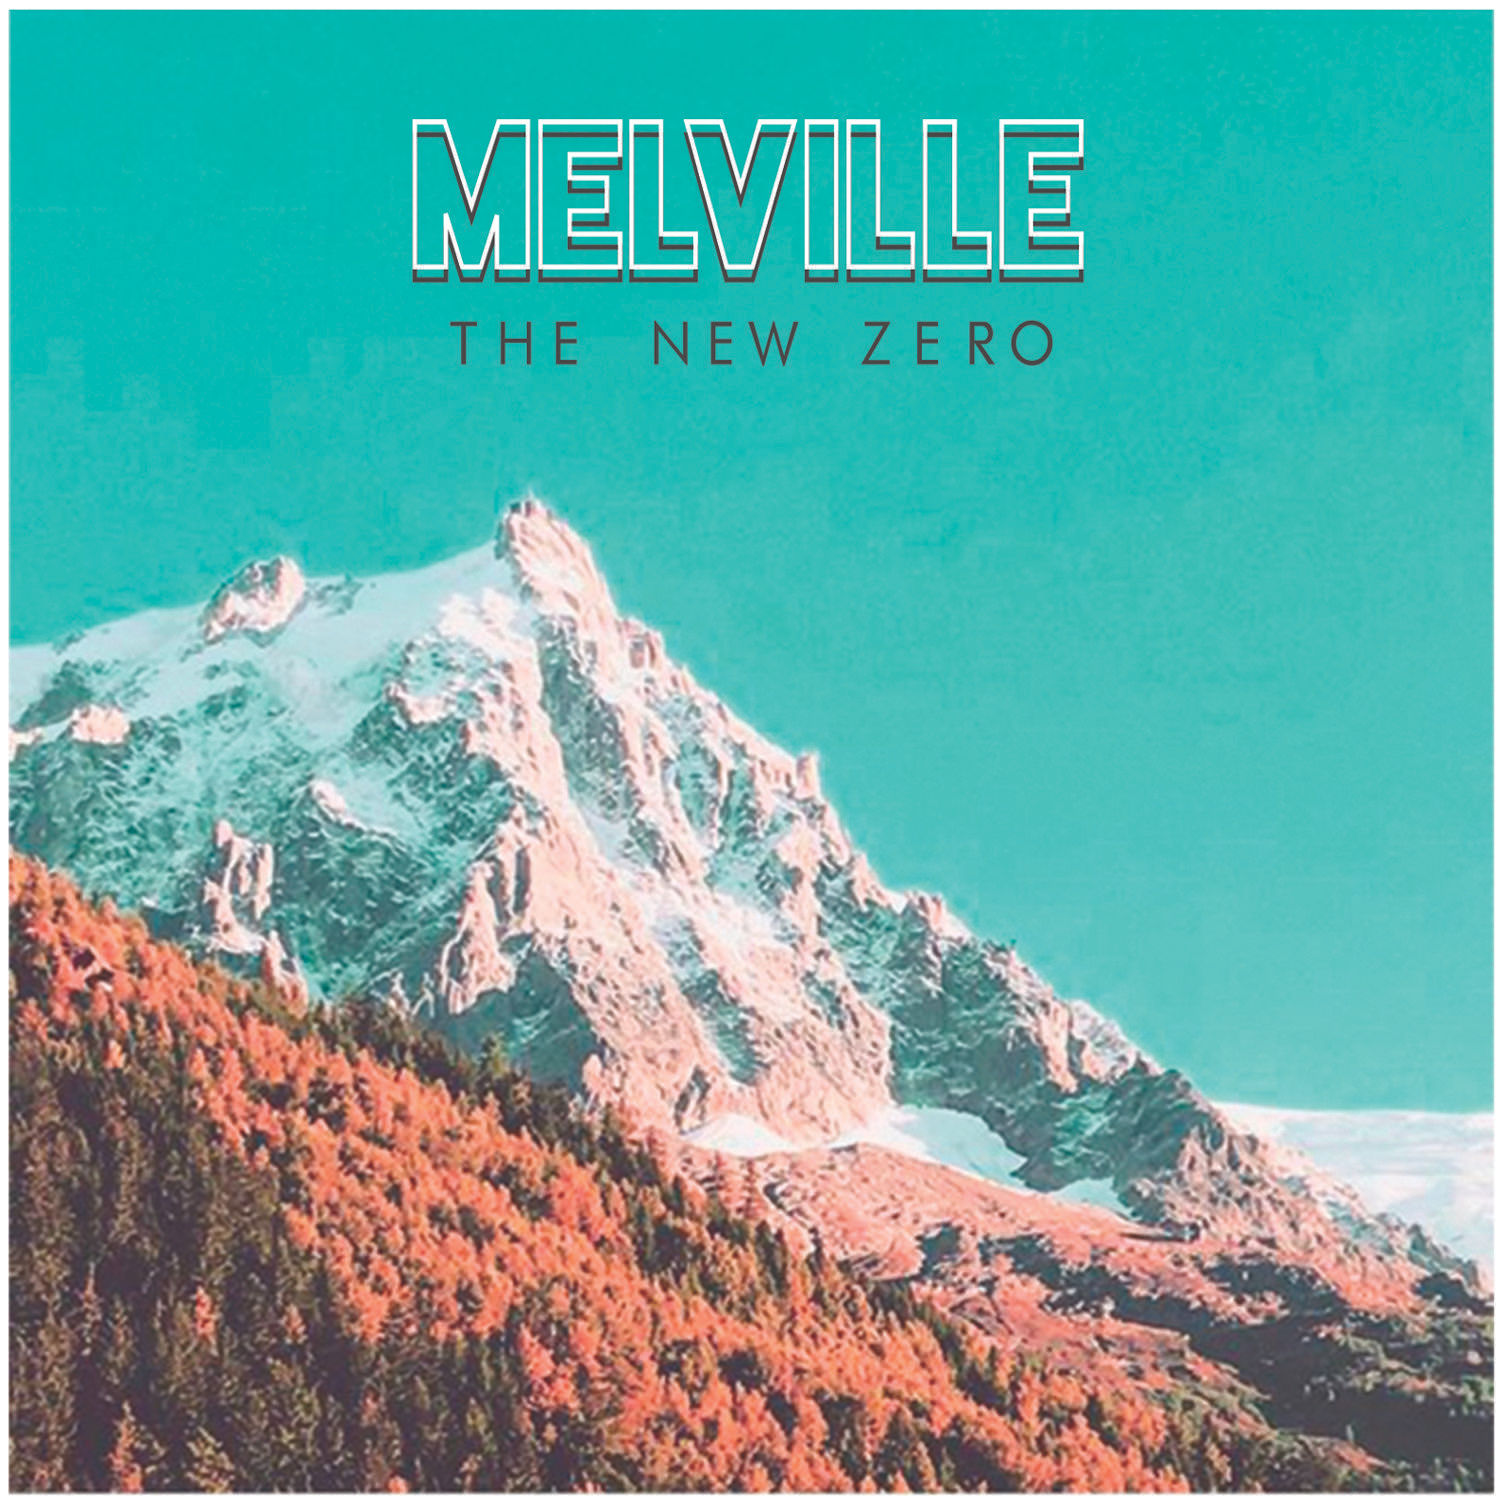 Melville_TheNewZero_album_art 1500.jpg